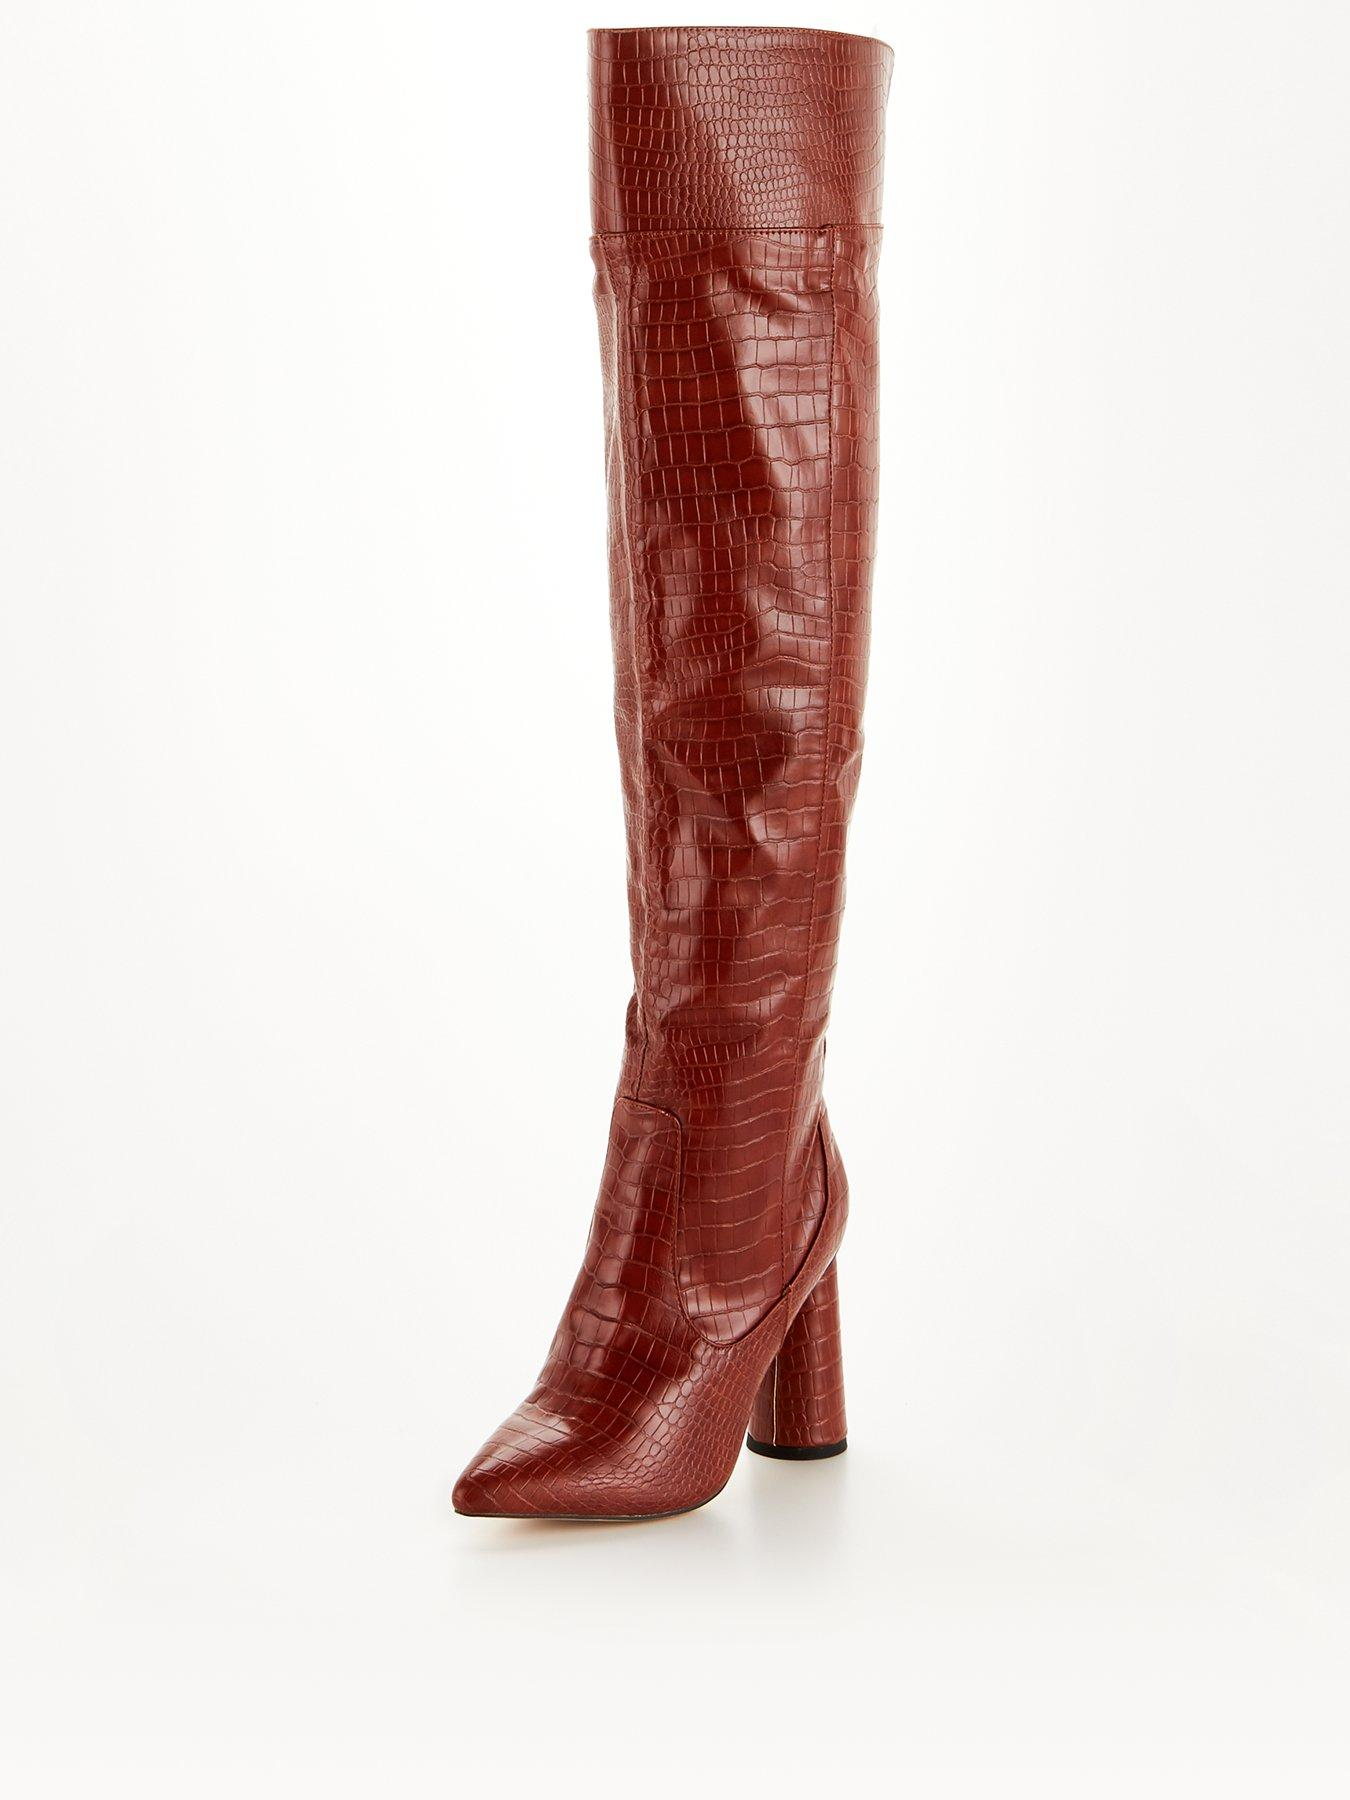 Details about  /Women Mixed Material Over The Knee Pointed Toe Boot Wraparound Straps Inner Zip